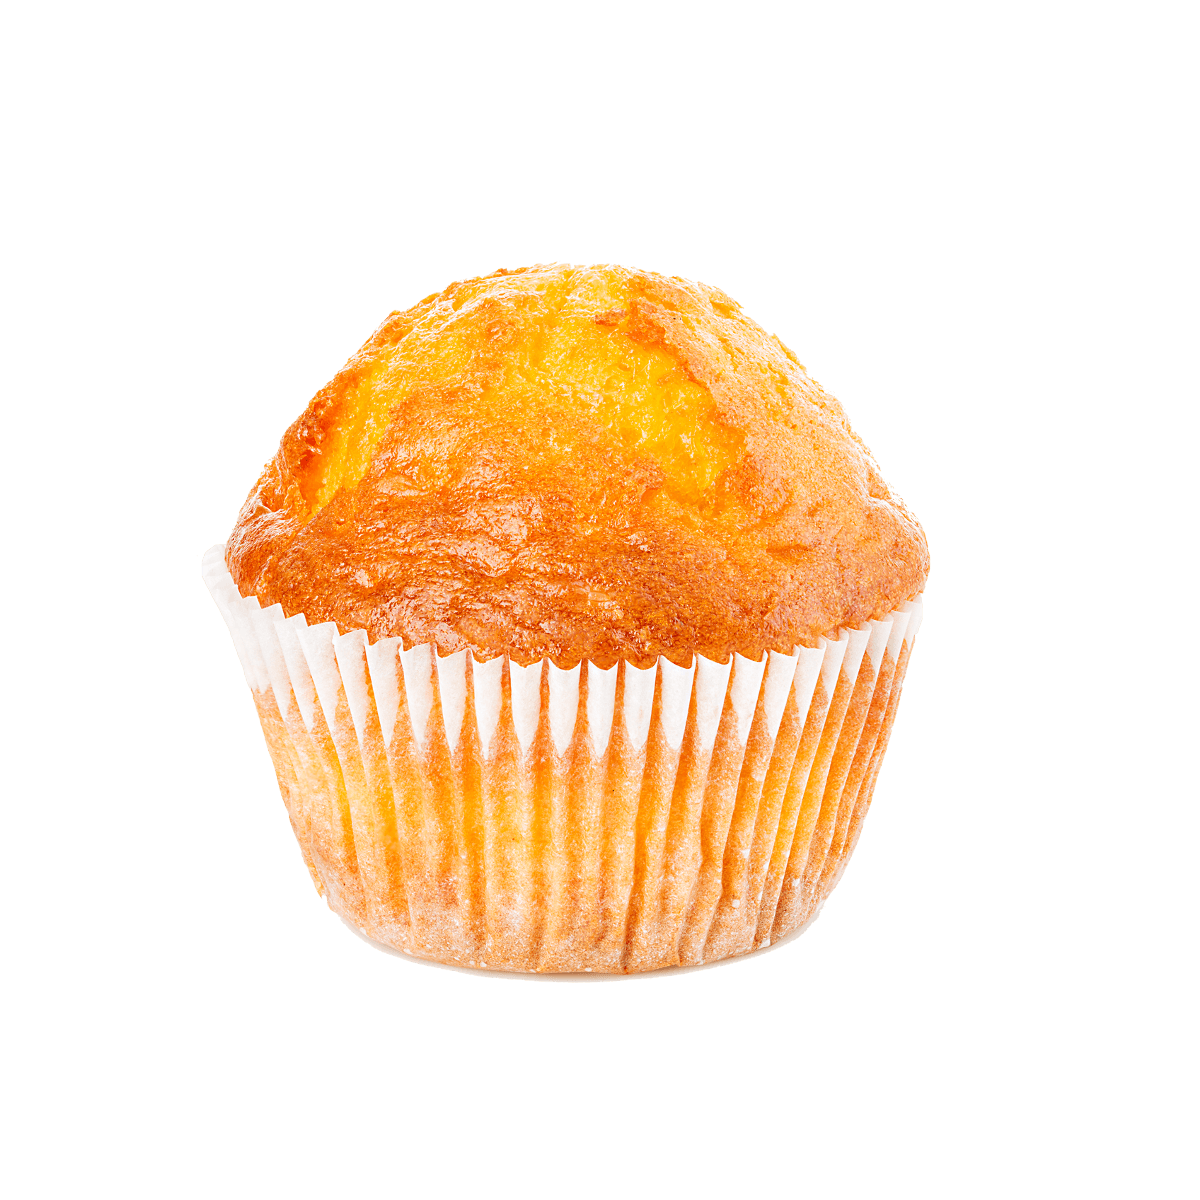 http://pastry.bold-themes.com/main-demo/wp-content/uploads/sites/8/2017/08/tab_product_04.png